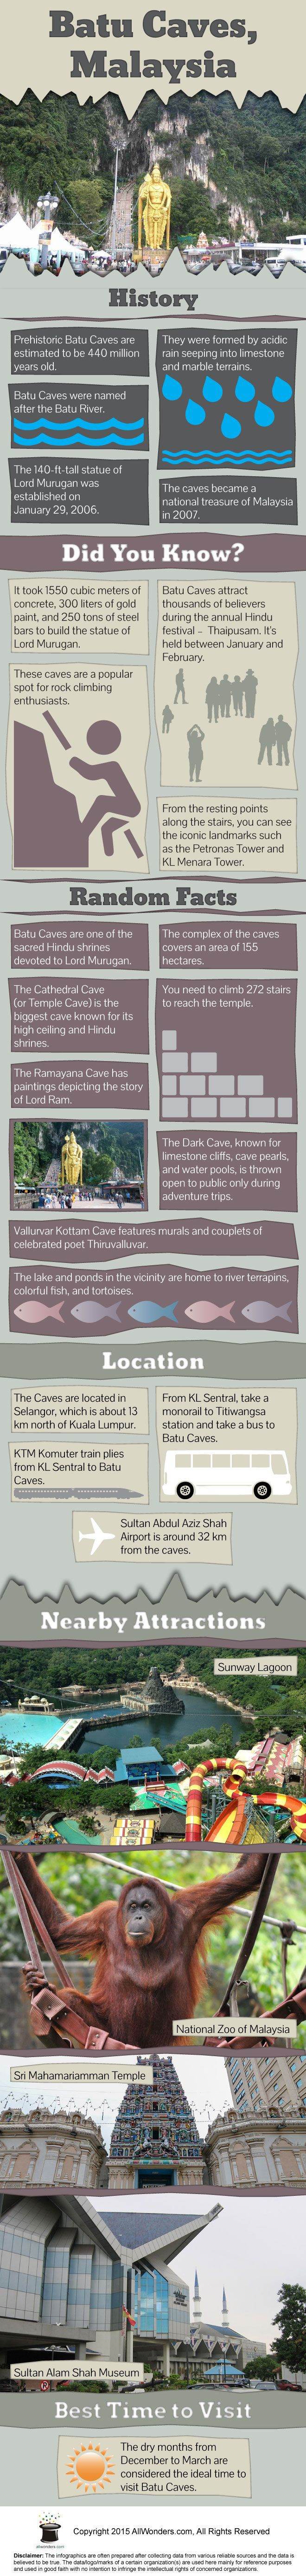 Batu Caves Infographics, Recommend as a place to visit even though it's pretty dirty.